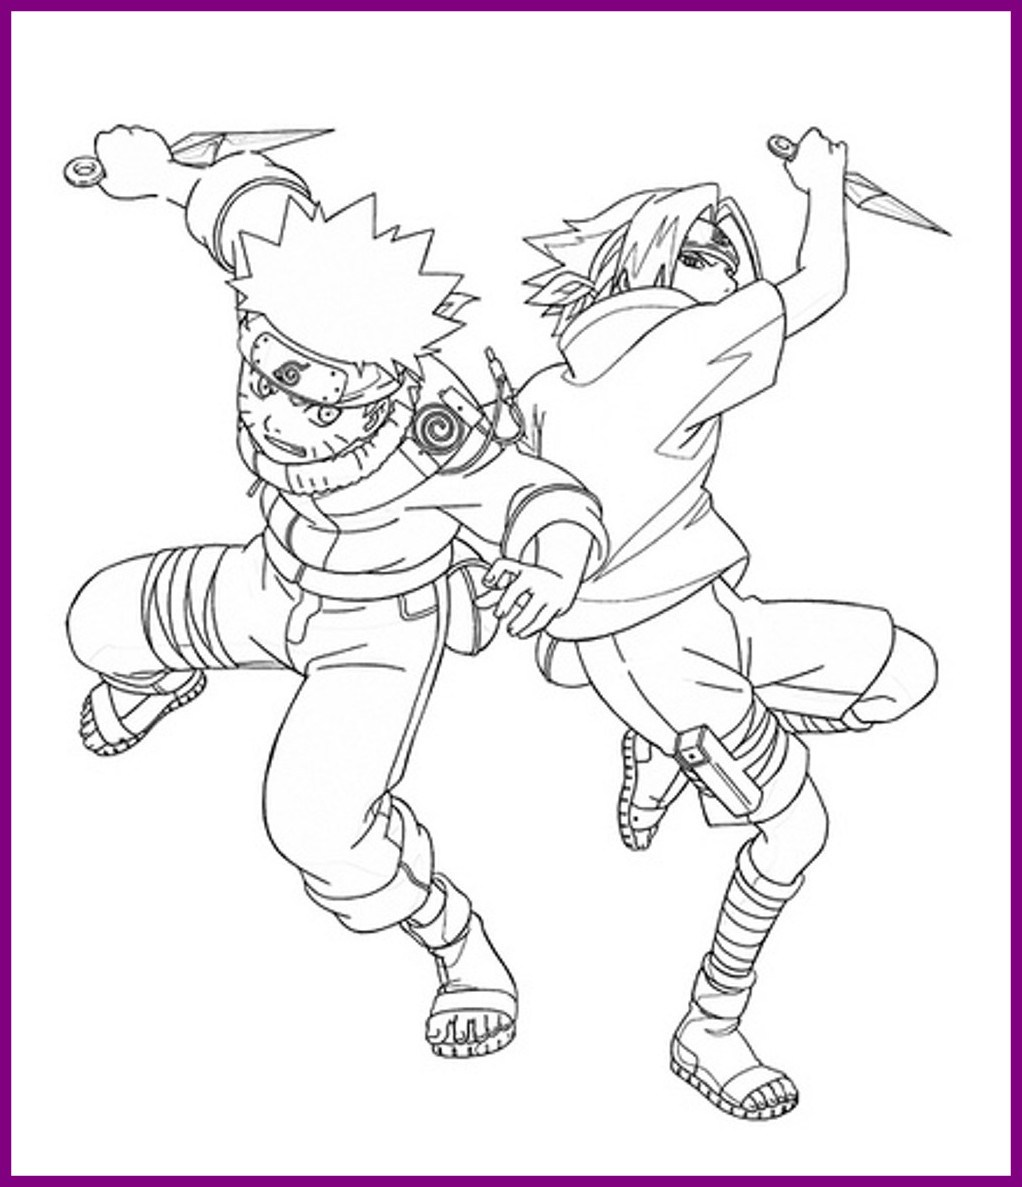 1022x1187 The Best Naruto Shippuden Coloring Pages To Print Pics Of Big Nate